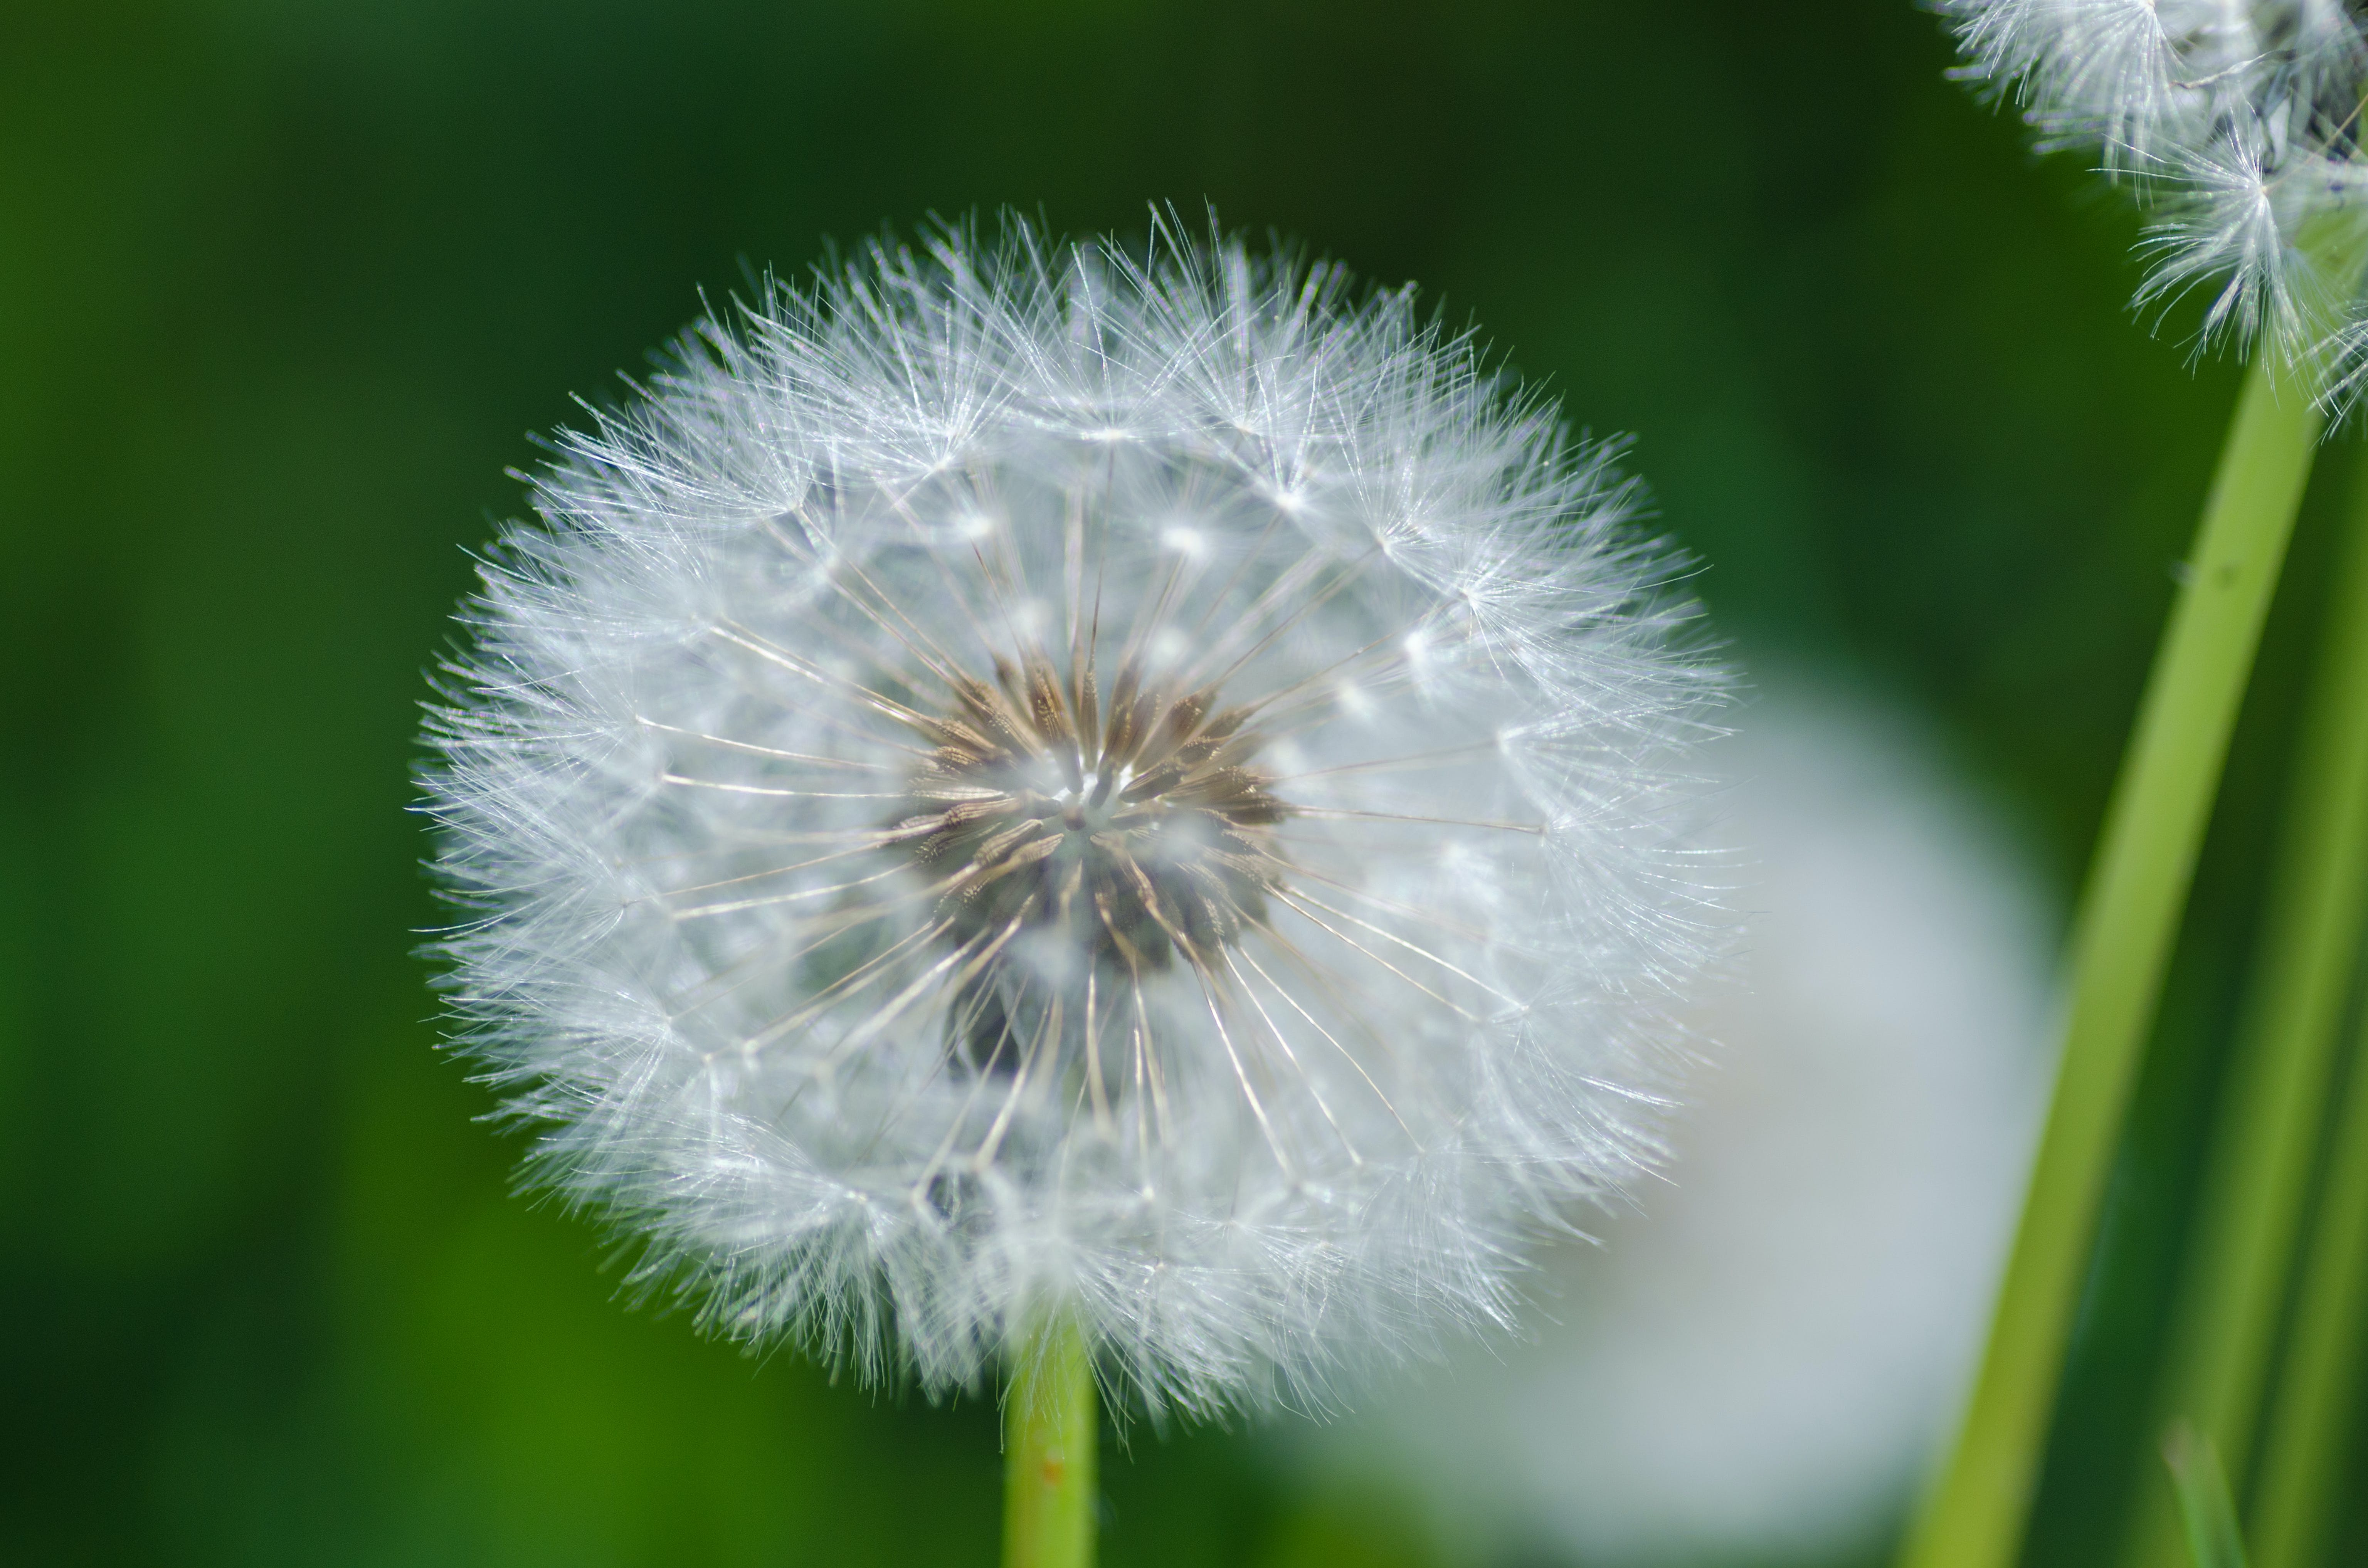 Selective Focus Photography of White Dandelion